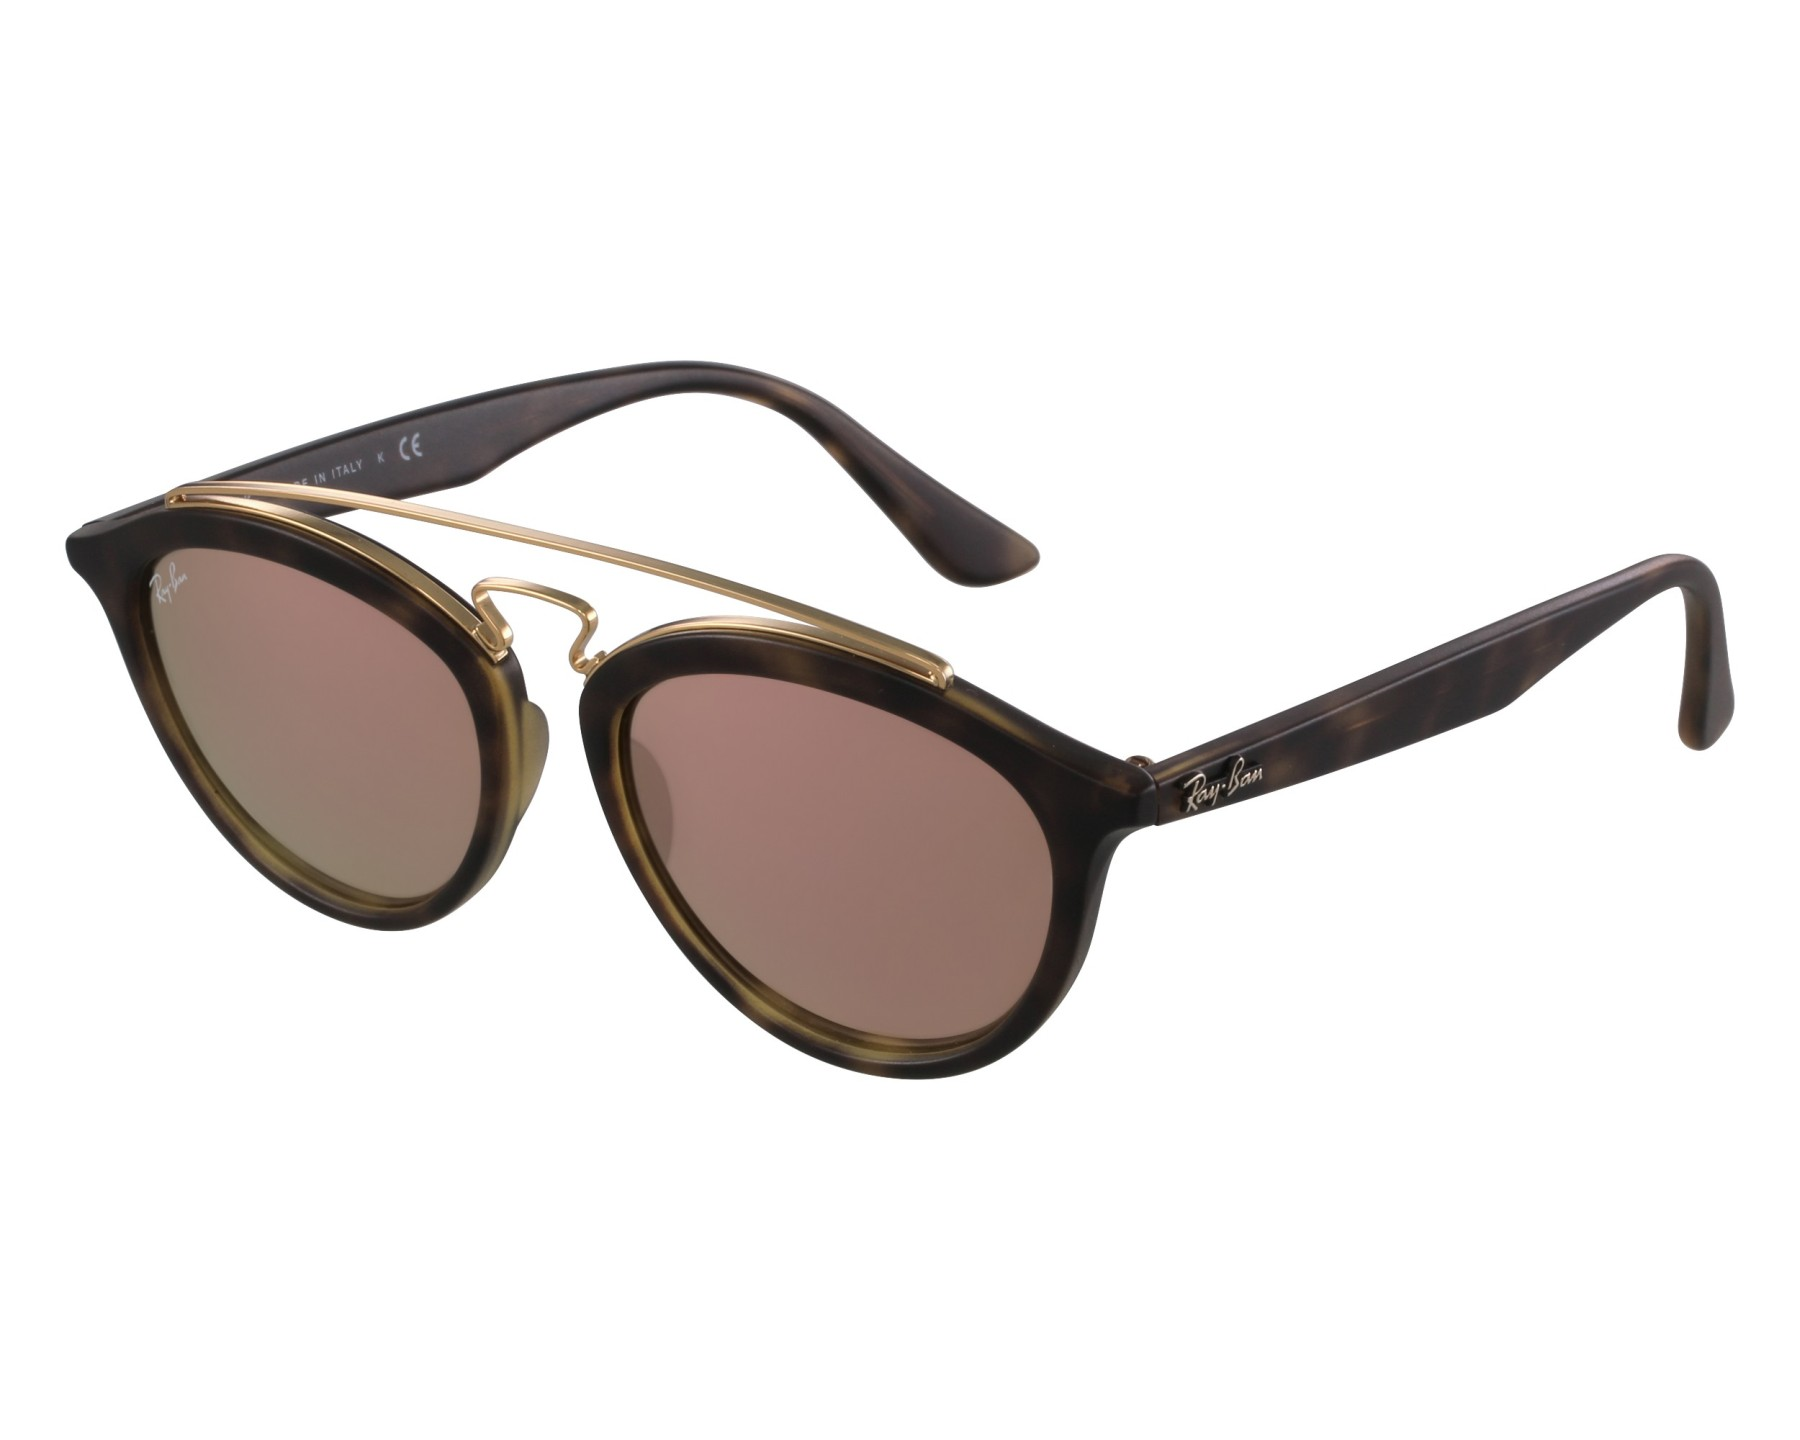 Ray-Ban Rb4257 60925a 53-19 HEDKBVR